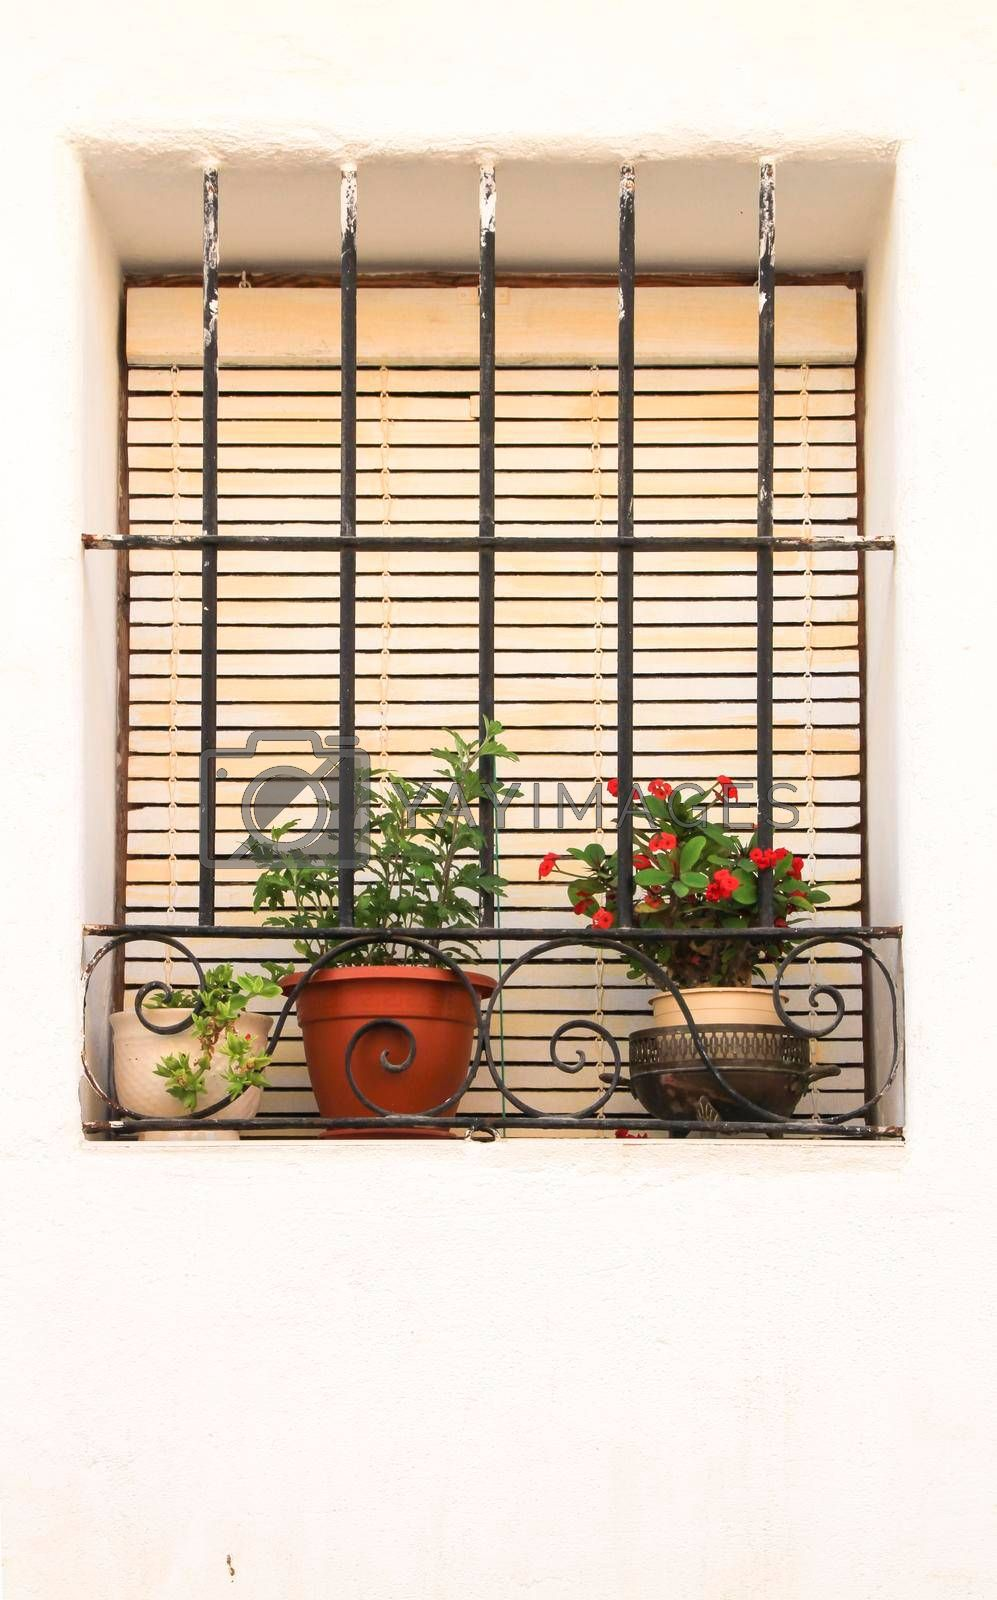 Whitewashed facade with window with forged metal grill in Altea village, Alicante, Spain